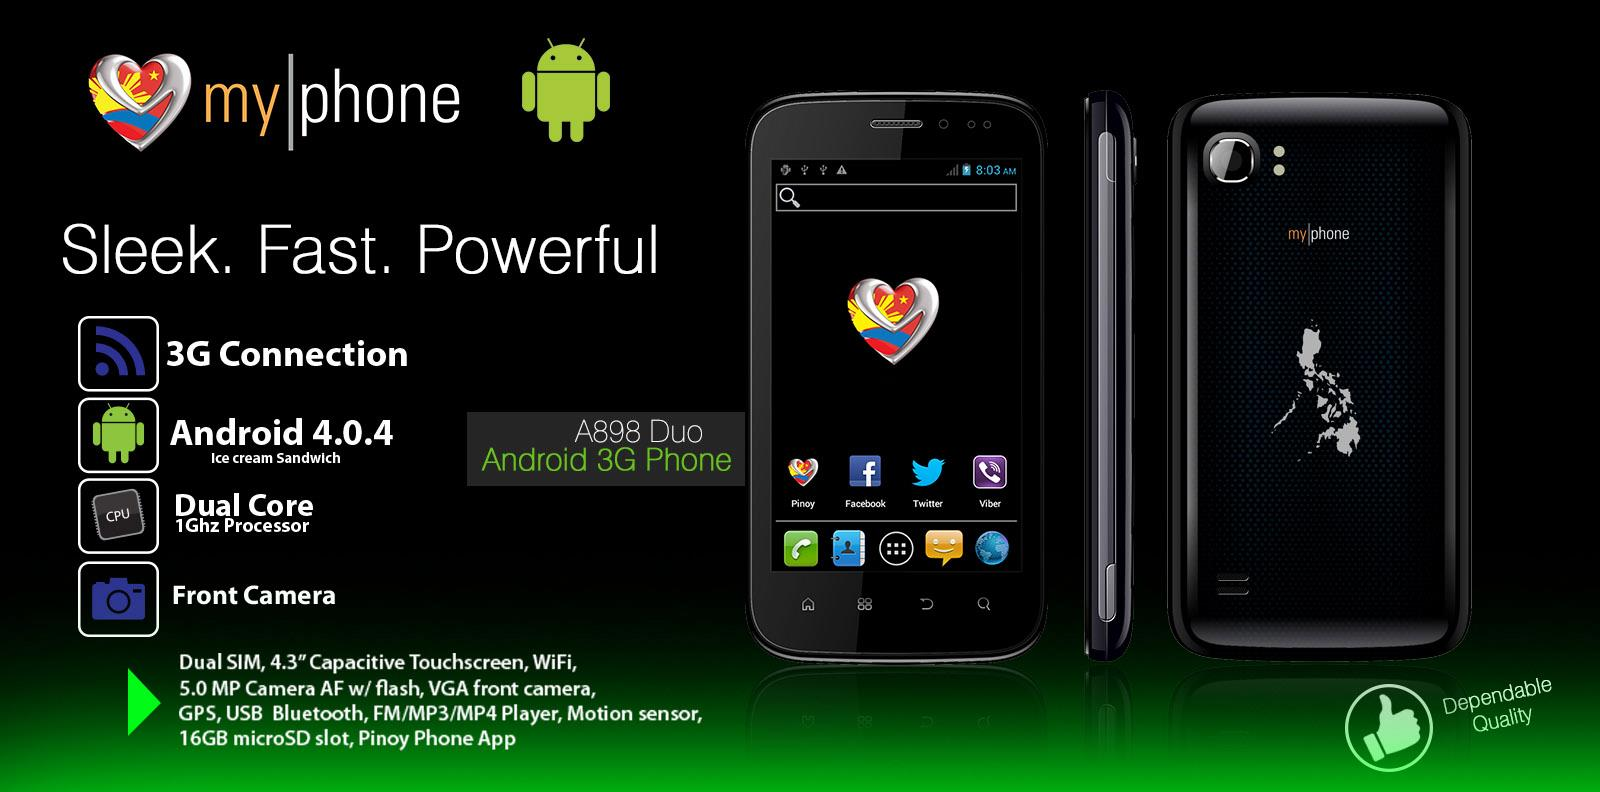 MyPhone A898 DUO Android 3G Phone